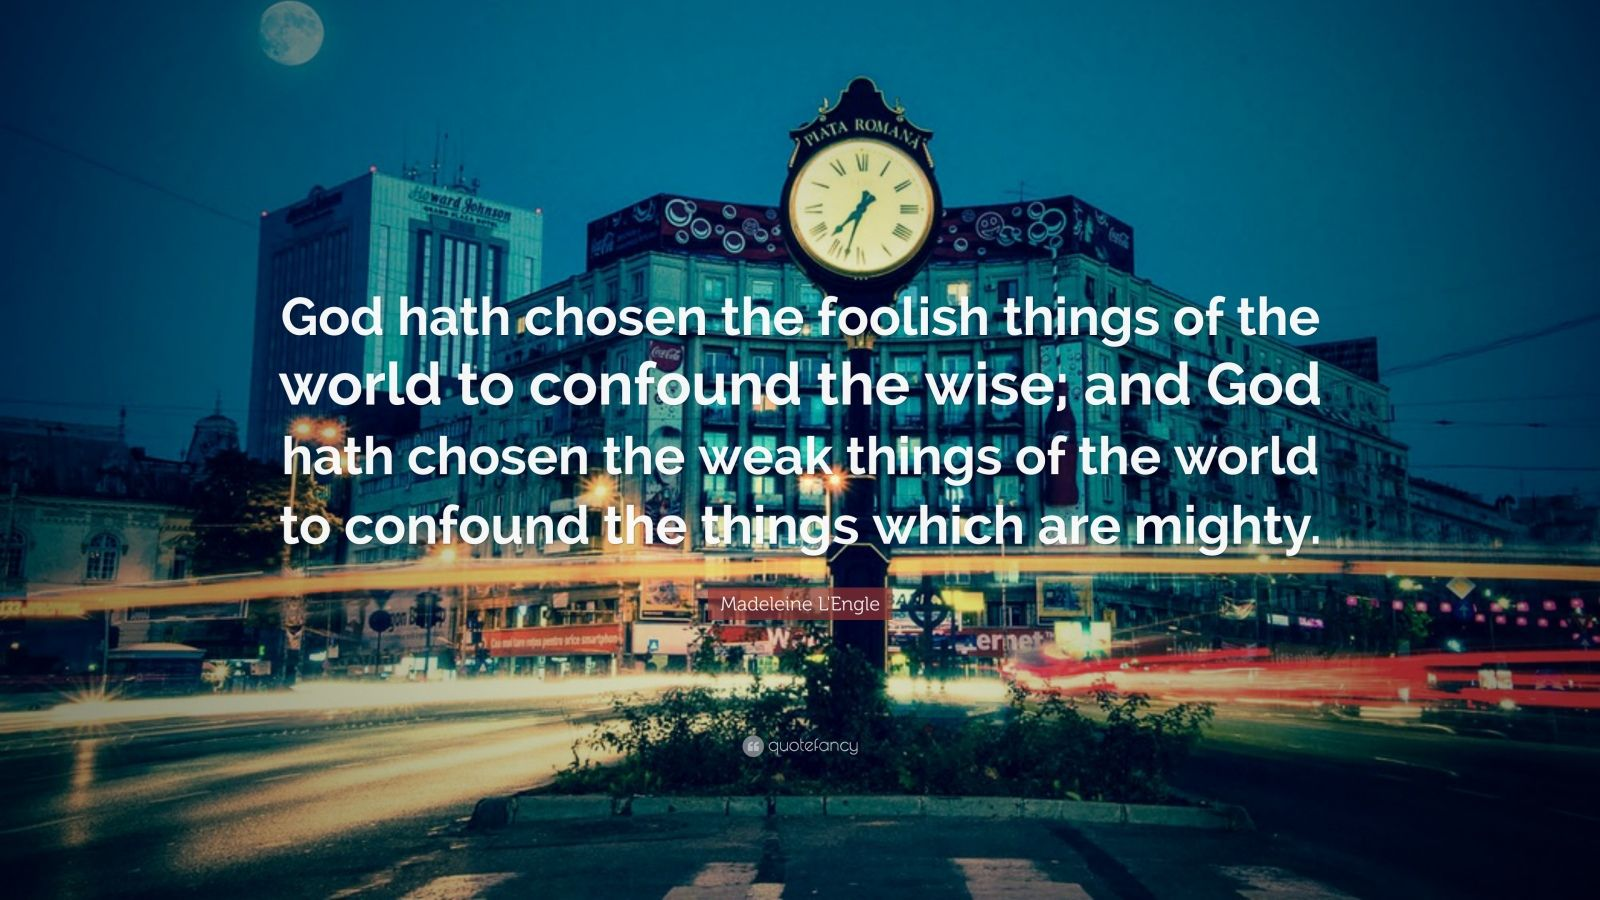 """Madeleine L'Engle Quote: """"God hath chosen the foolish things of the world to confound the wise; and God hath chosen the weak things of the world to confound the things which are mighty."""""""